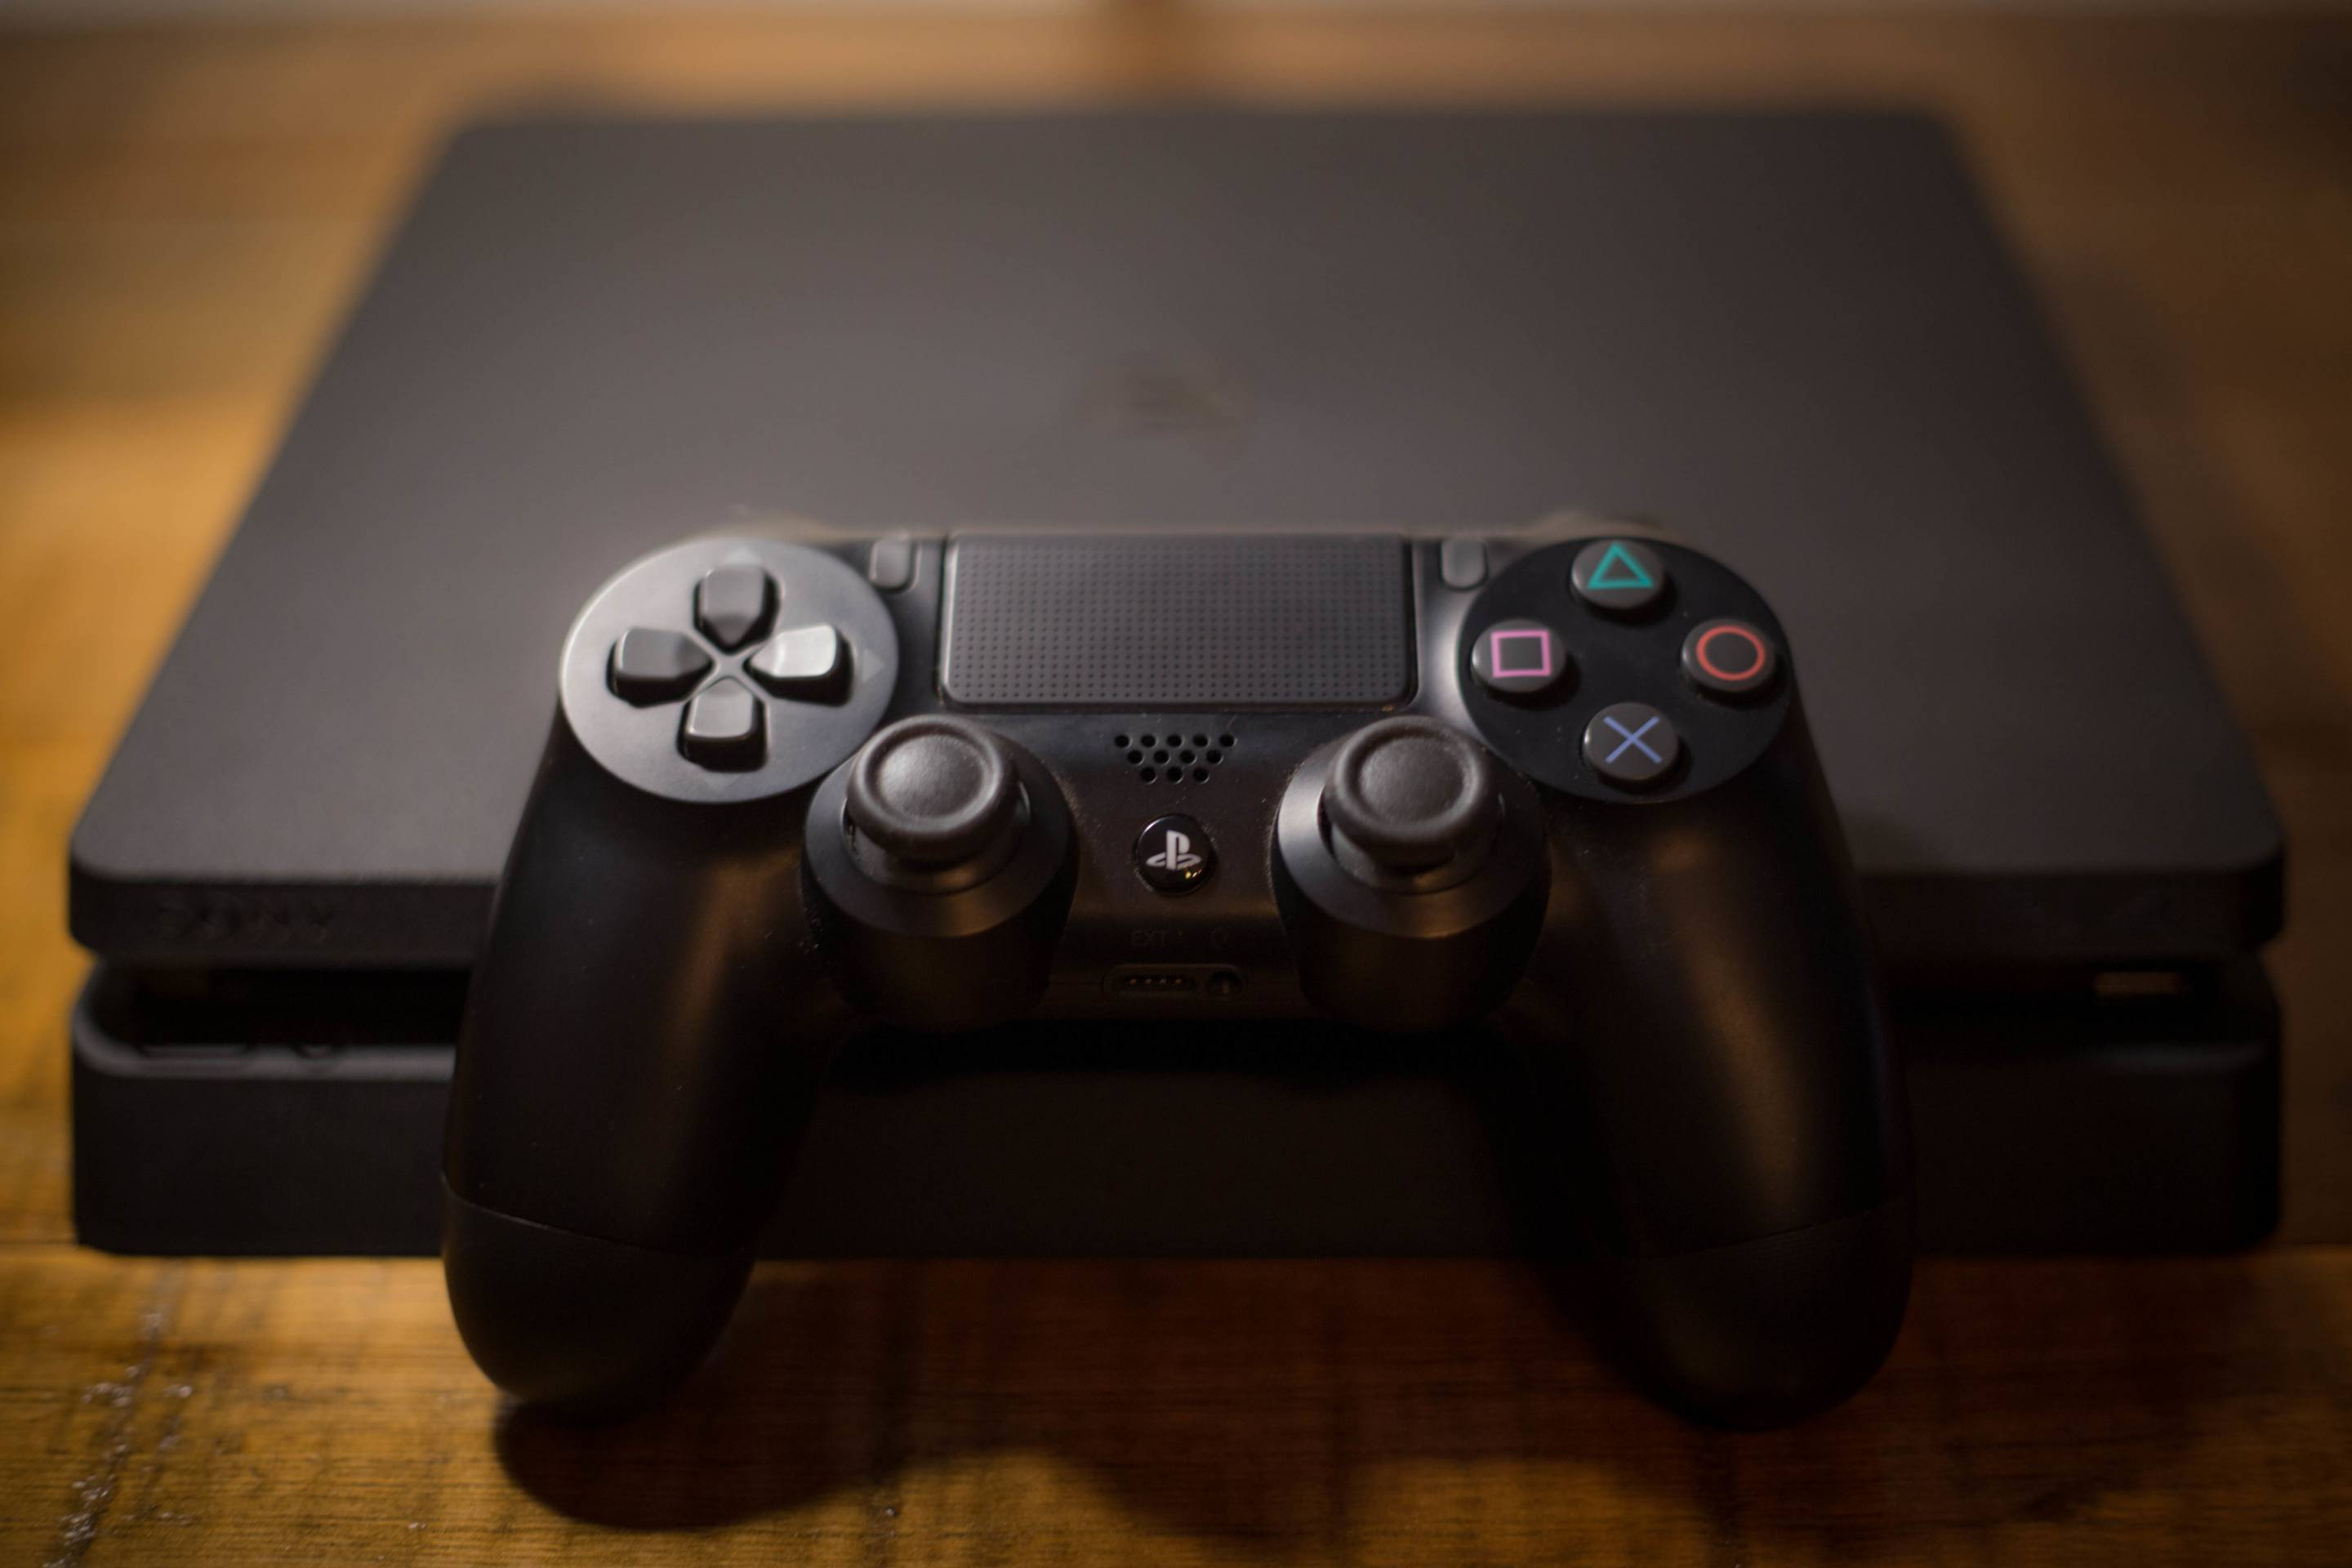 A Sony PlayStation 4 video game console